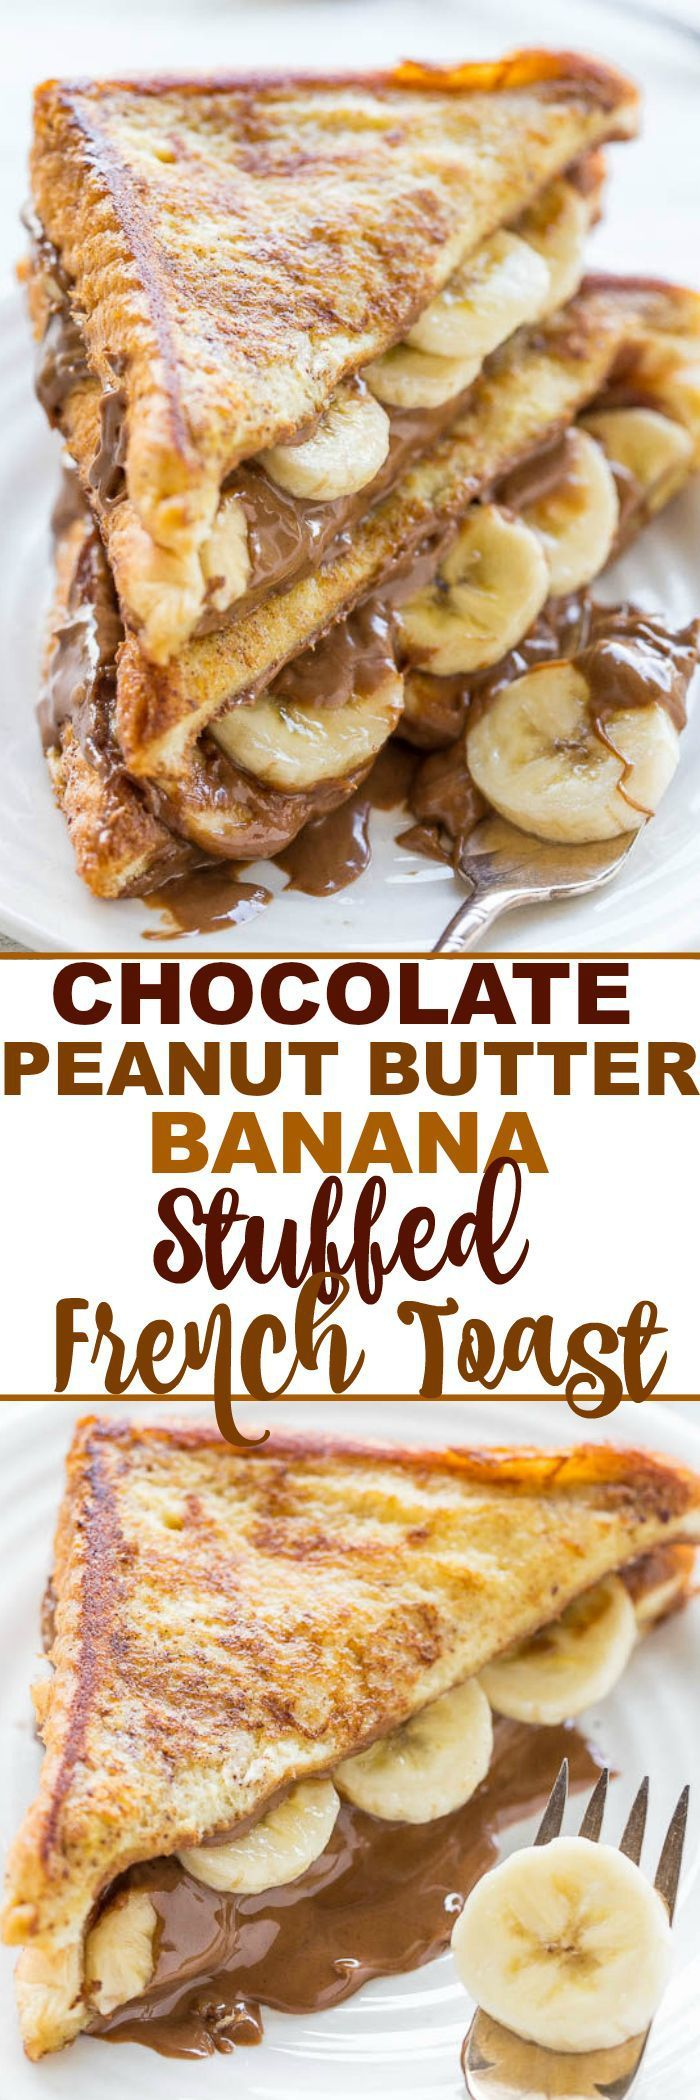 Chocolate Peanut Butter Banana Stuffed French Toast  Averie Cooks